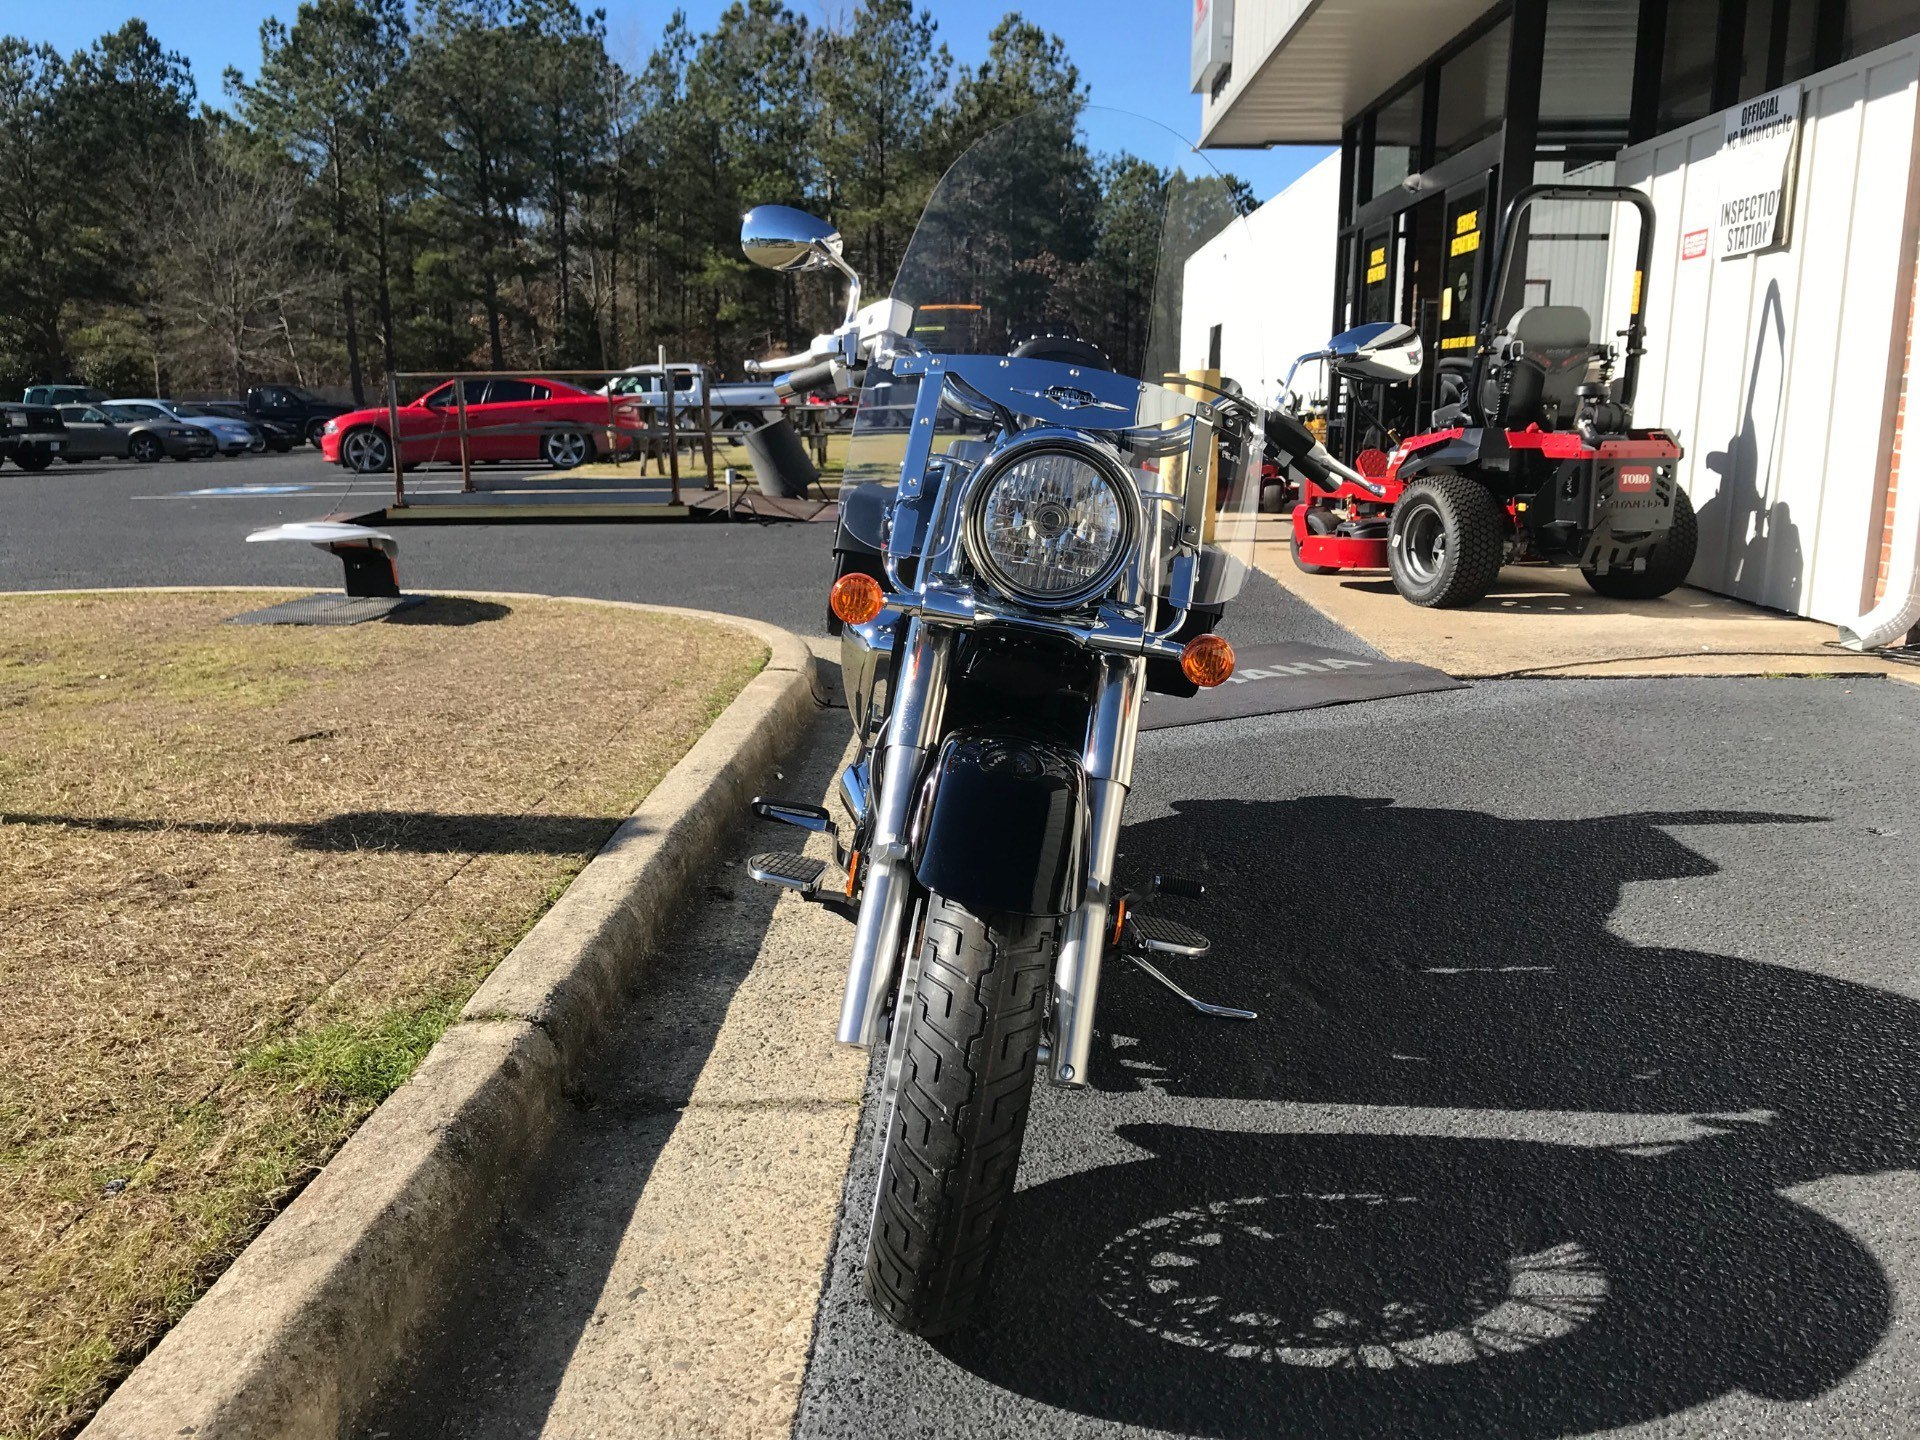 2019 Suzuki Boulevard C50T in Greenville, North Carolina - Photo 4